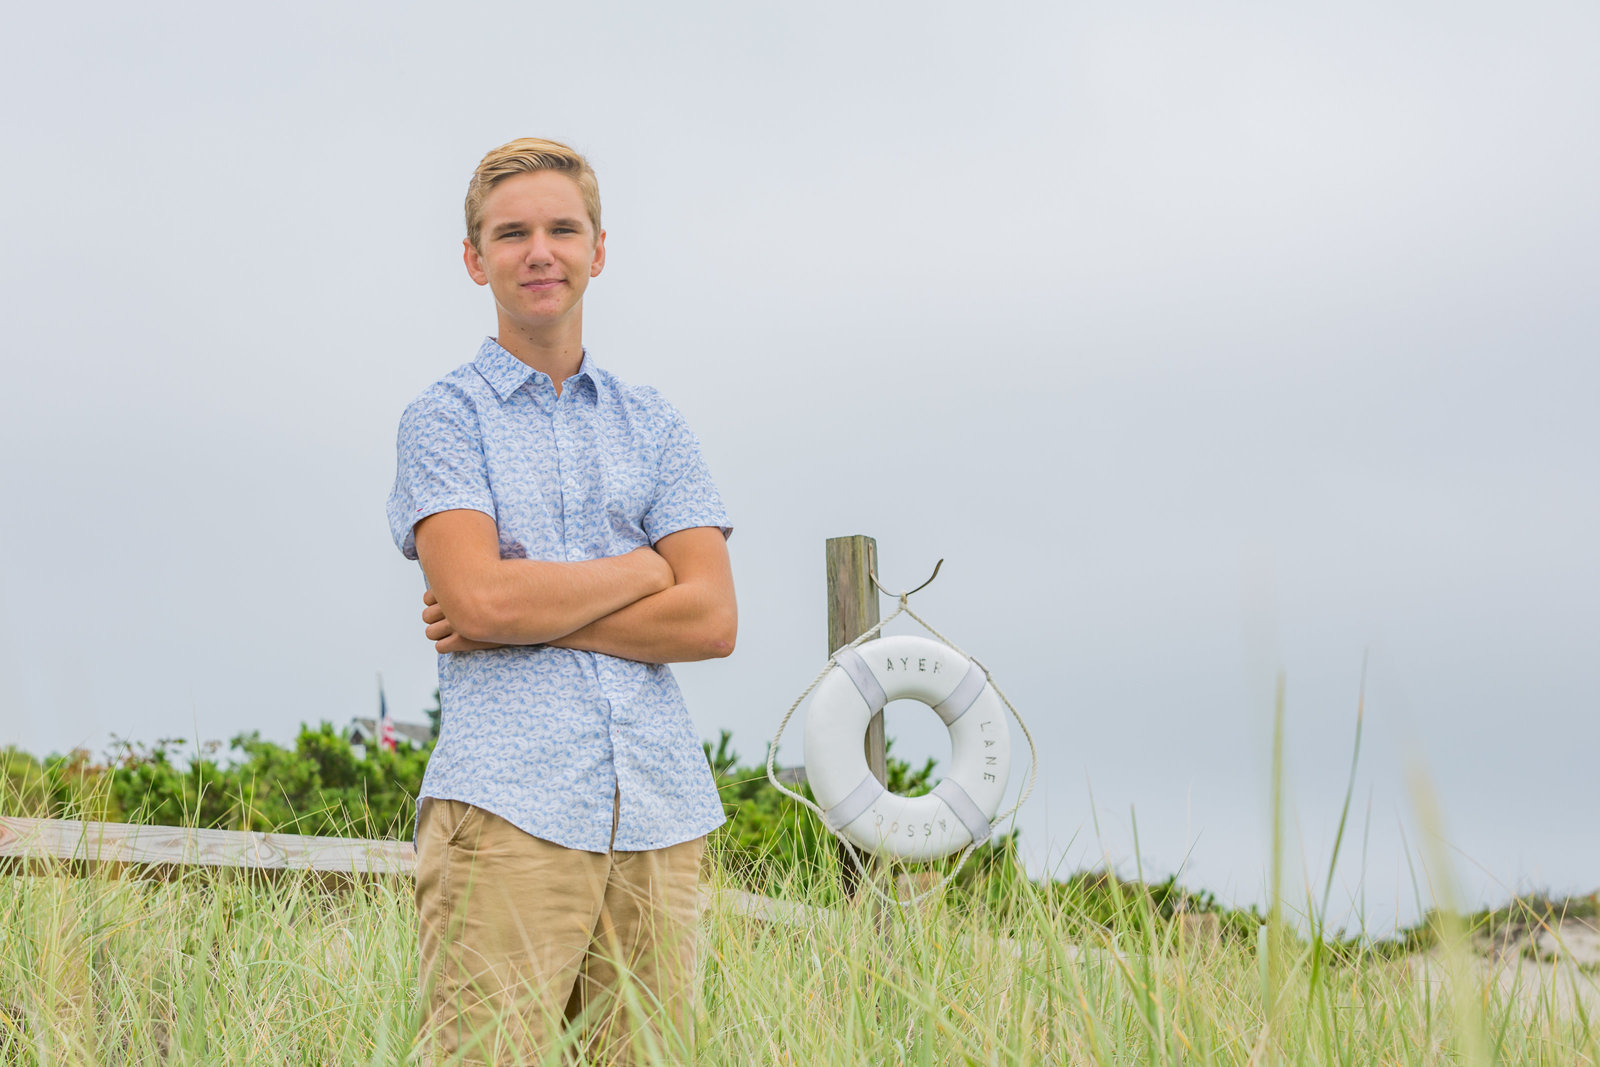 Harwichport_Ayers Beach_Cape Cod Senior Portraits_Michelle Kaye Photography-15483